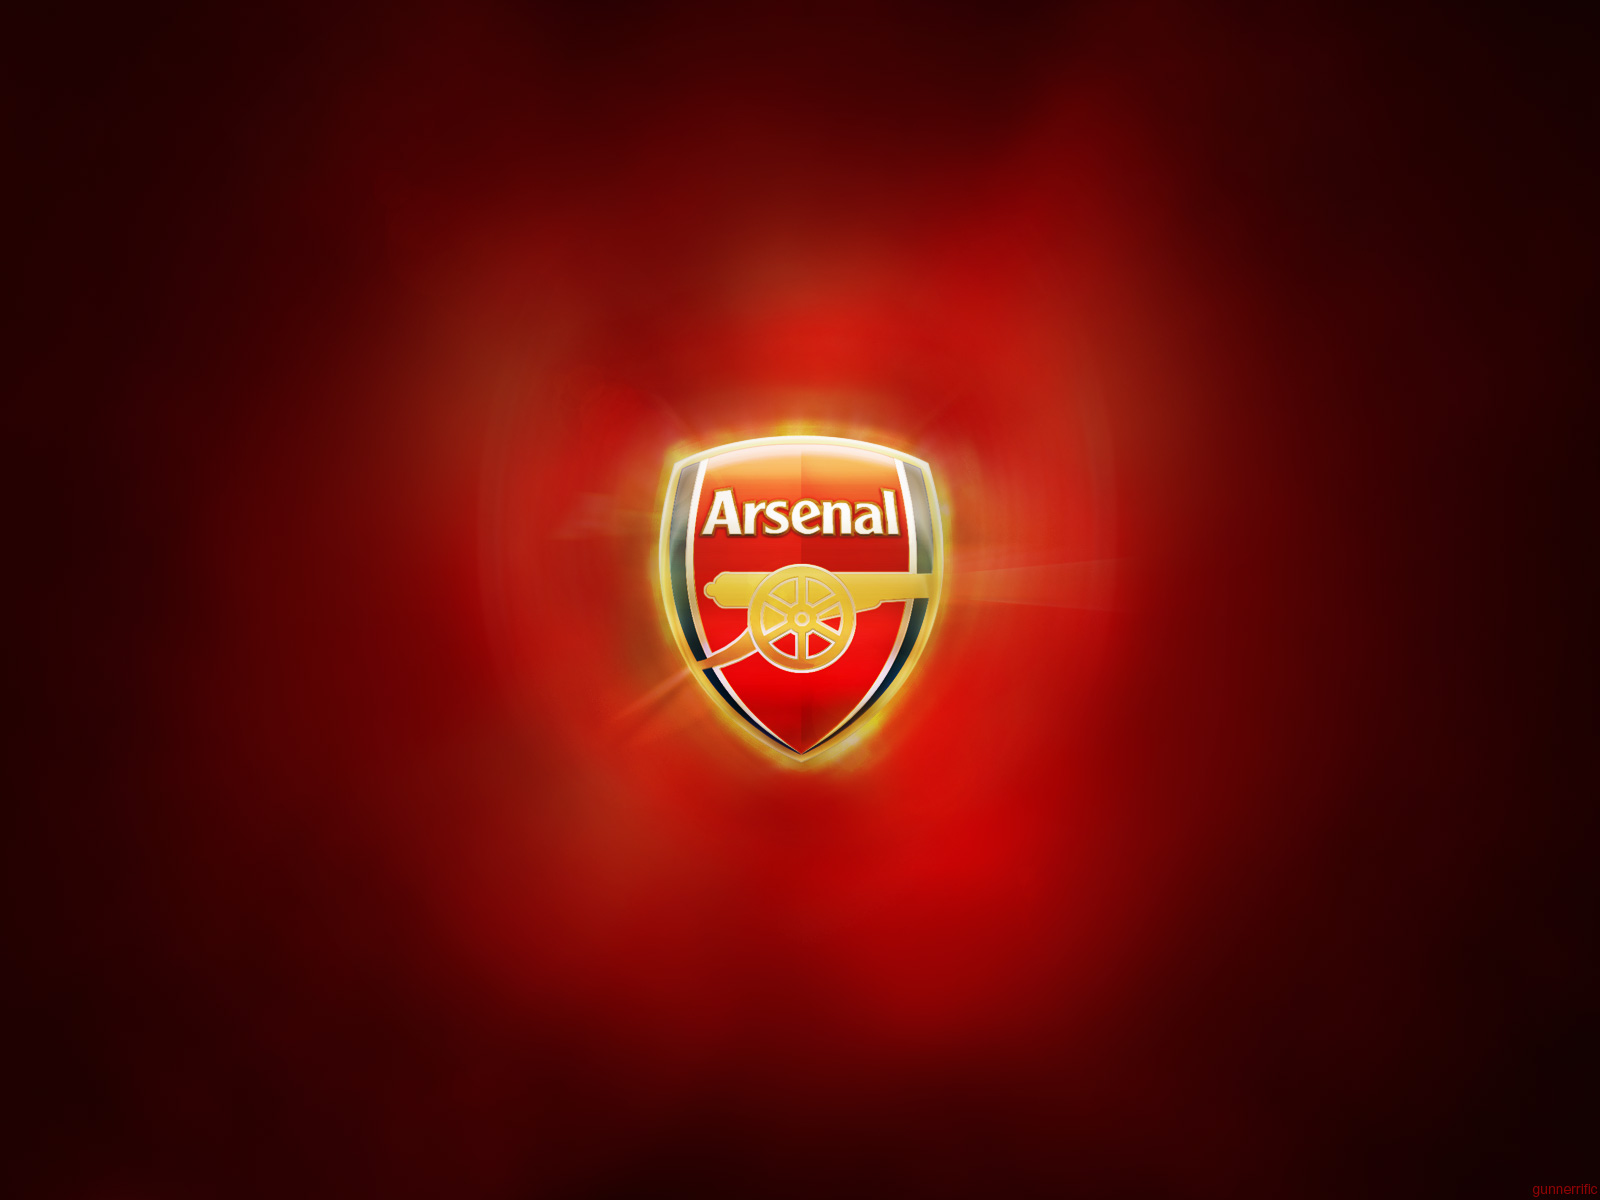 arsenal - Arsenal Wallpaper (123493) - Fanpop